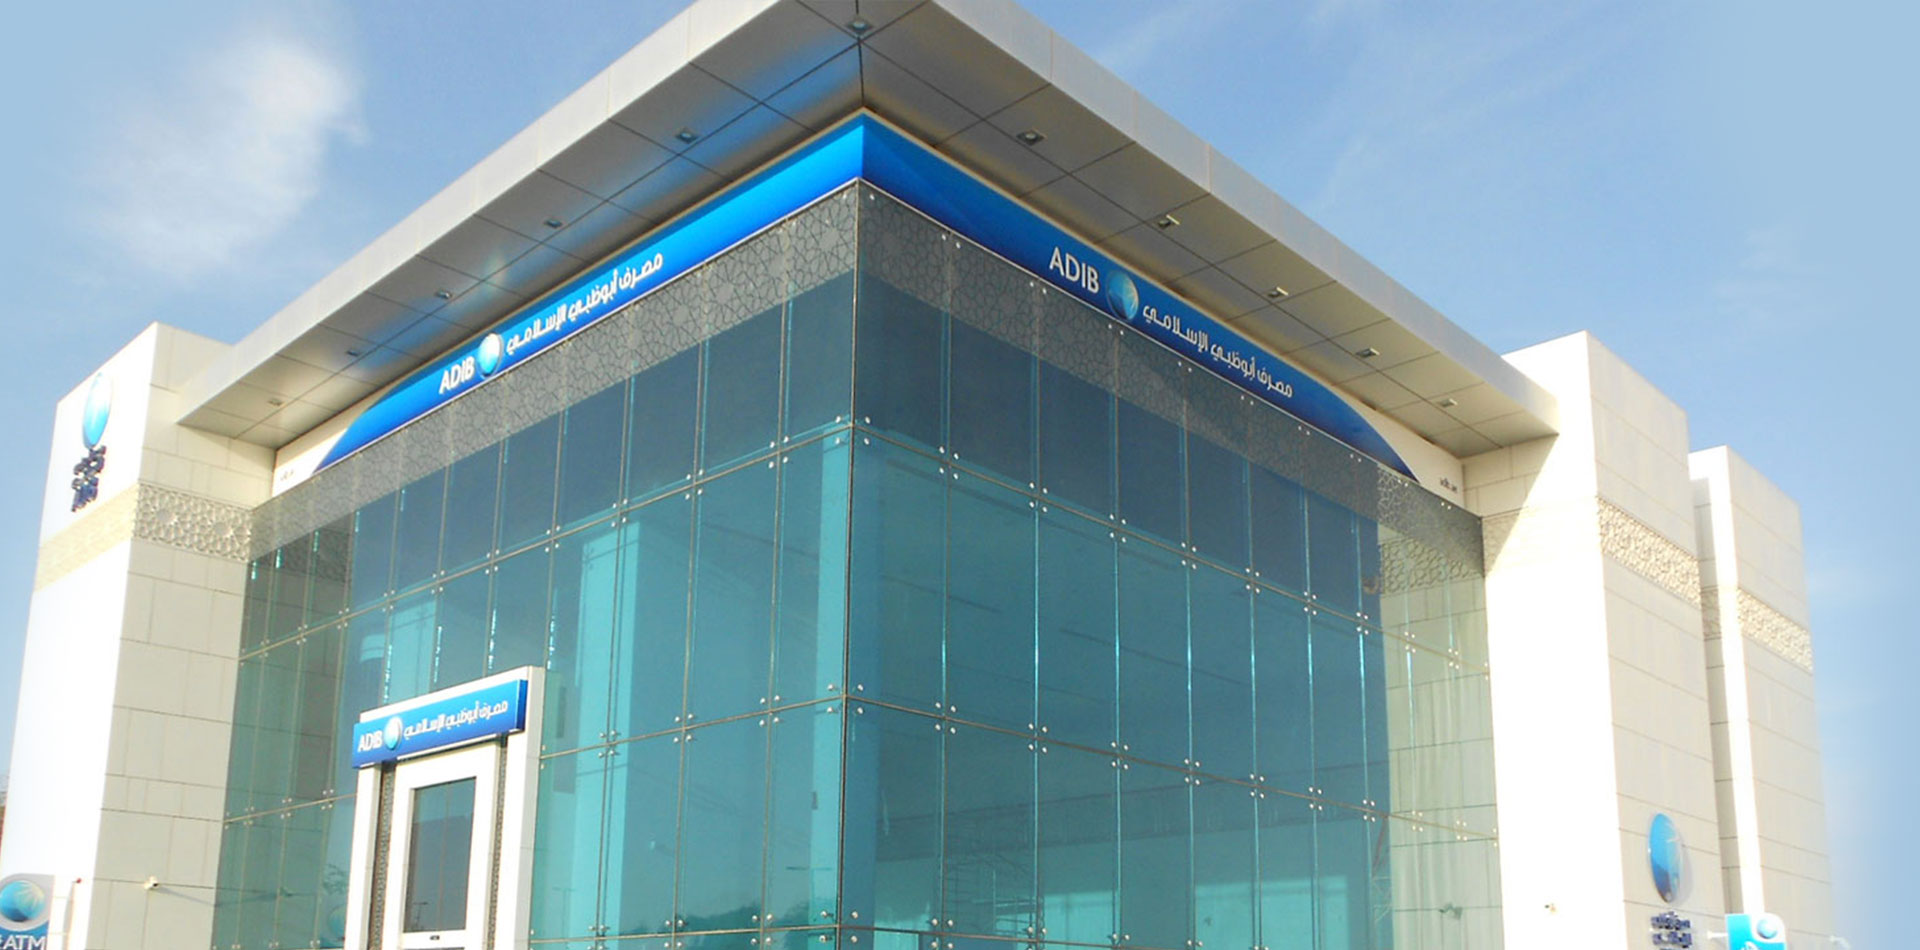 External 3D Signage of ADIB